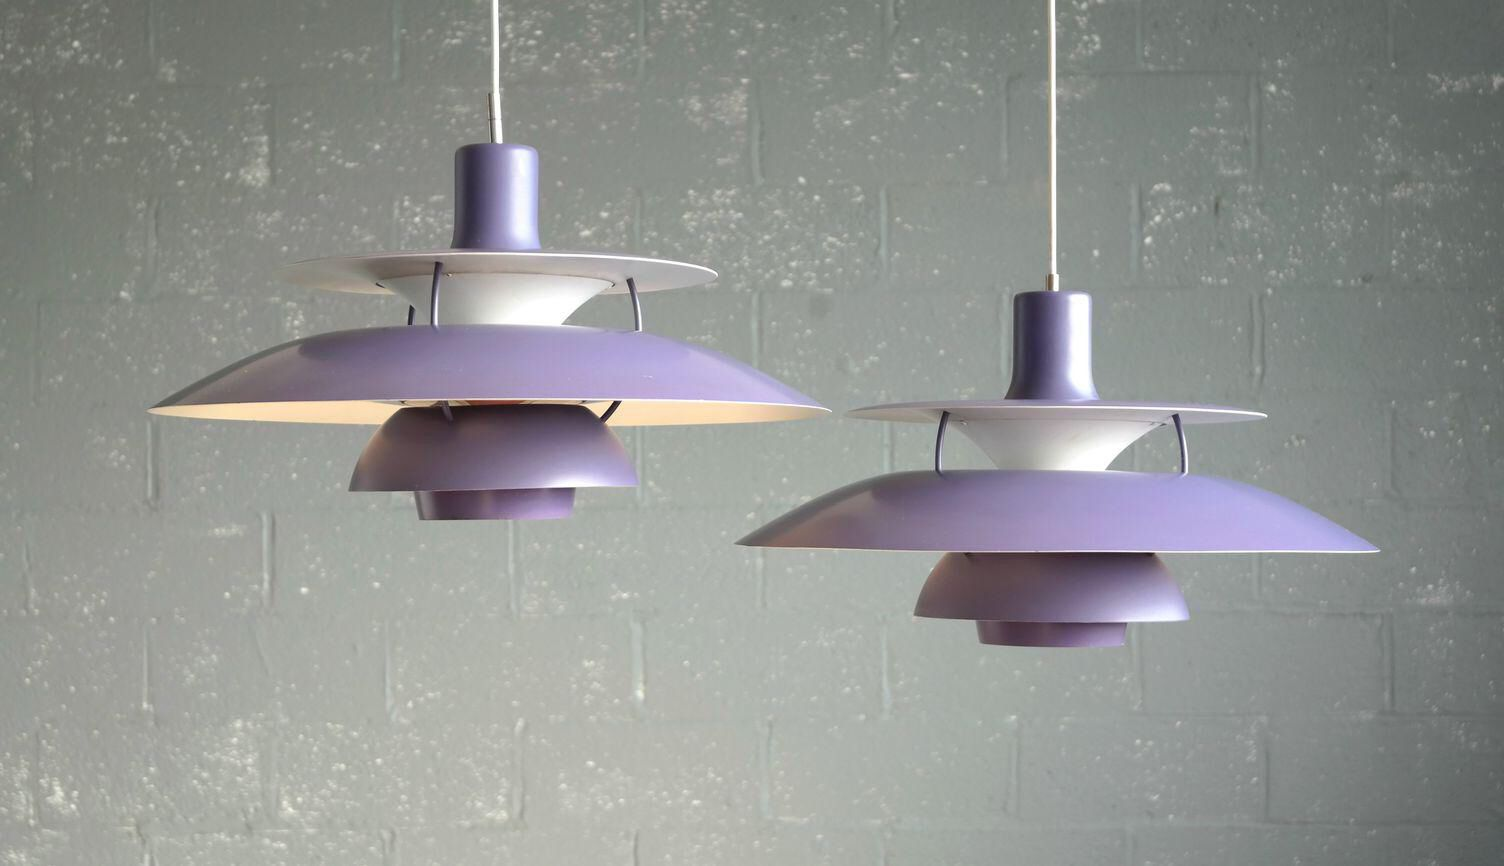 Poul henningsen for louis poulsen purple model ph pendant lamps